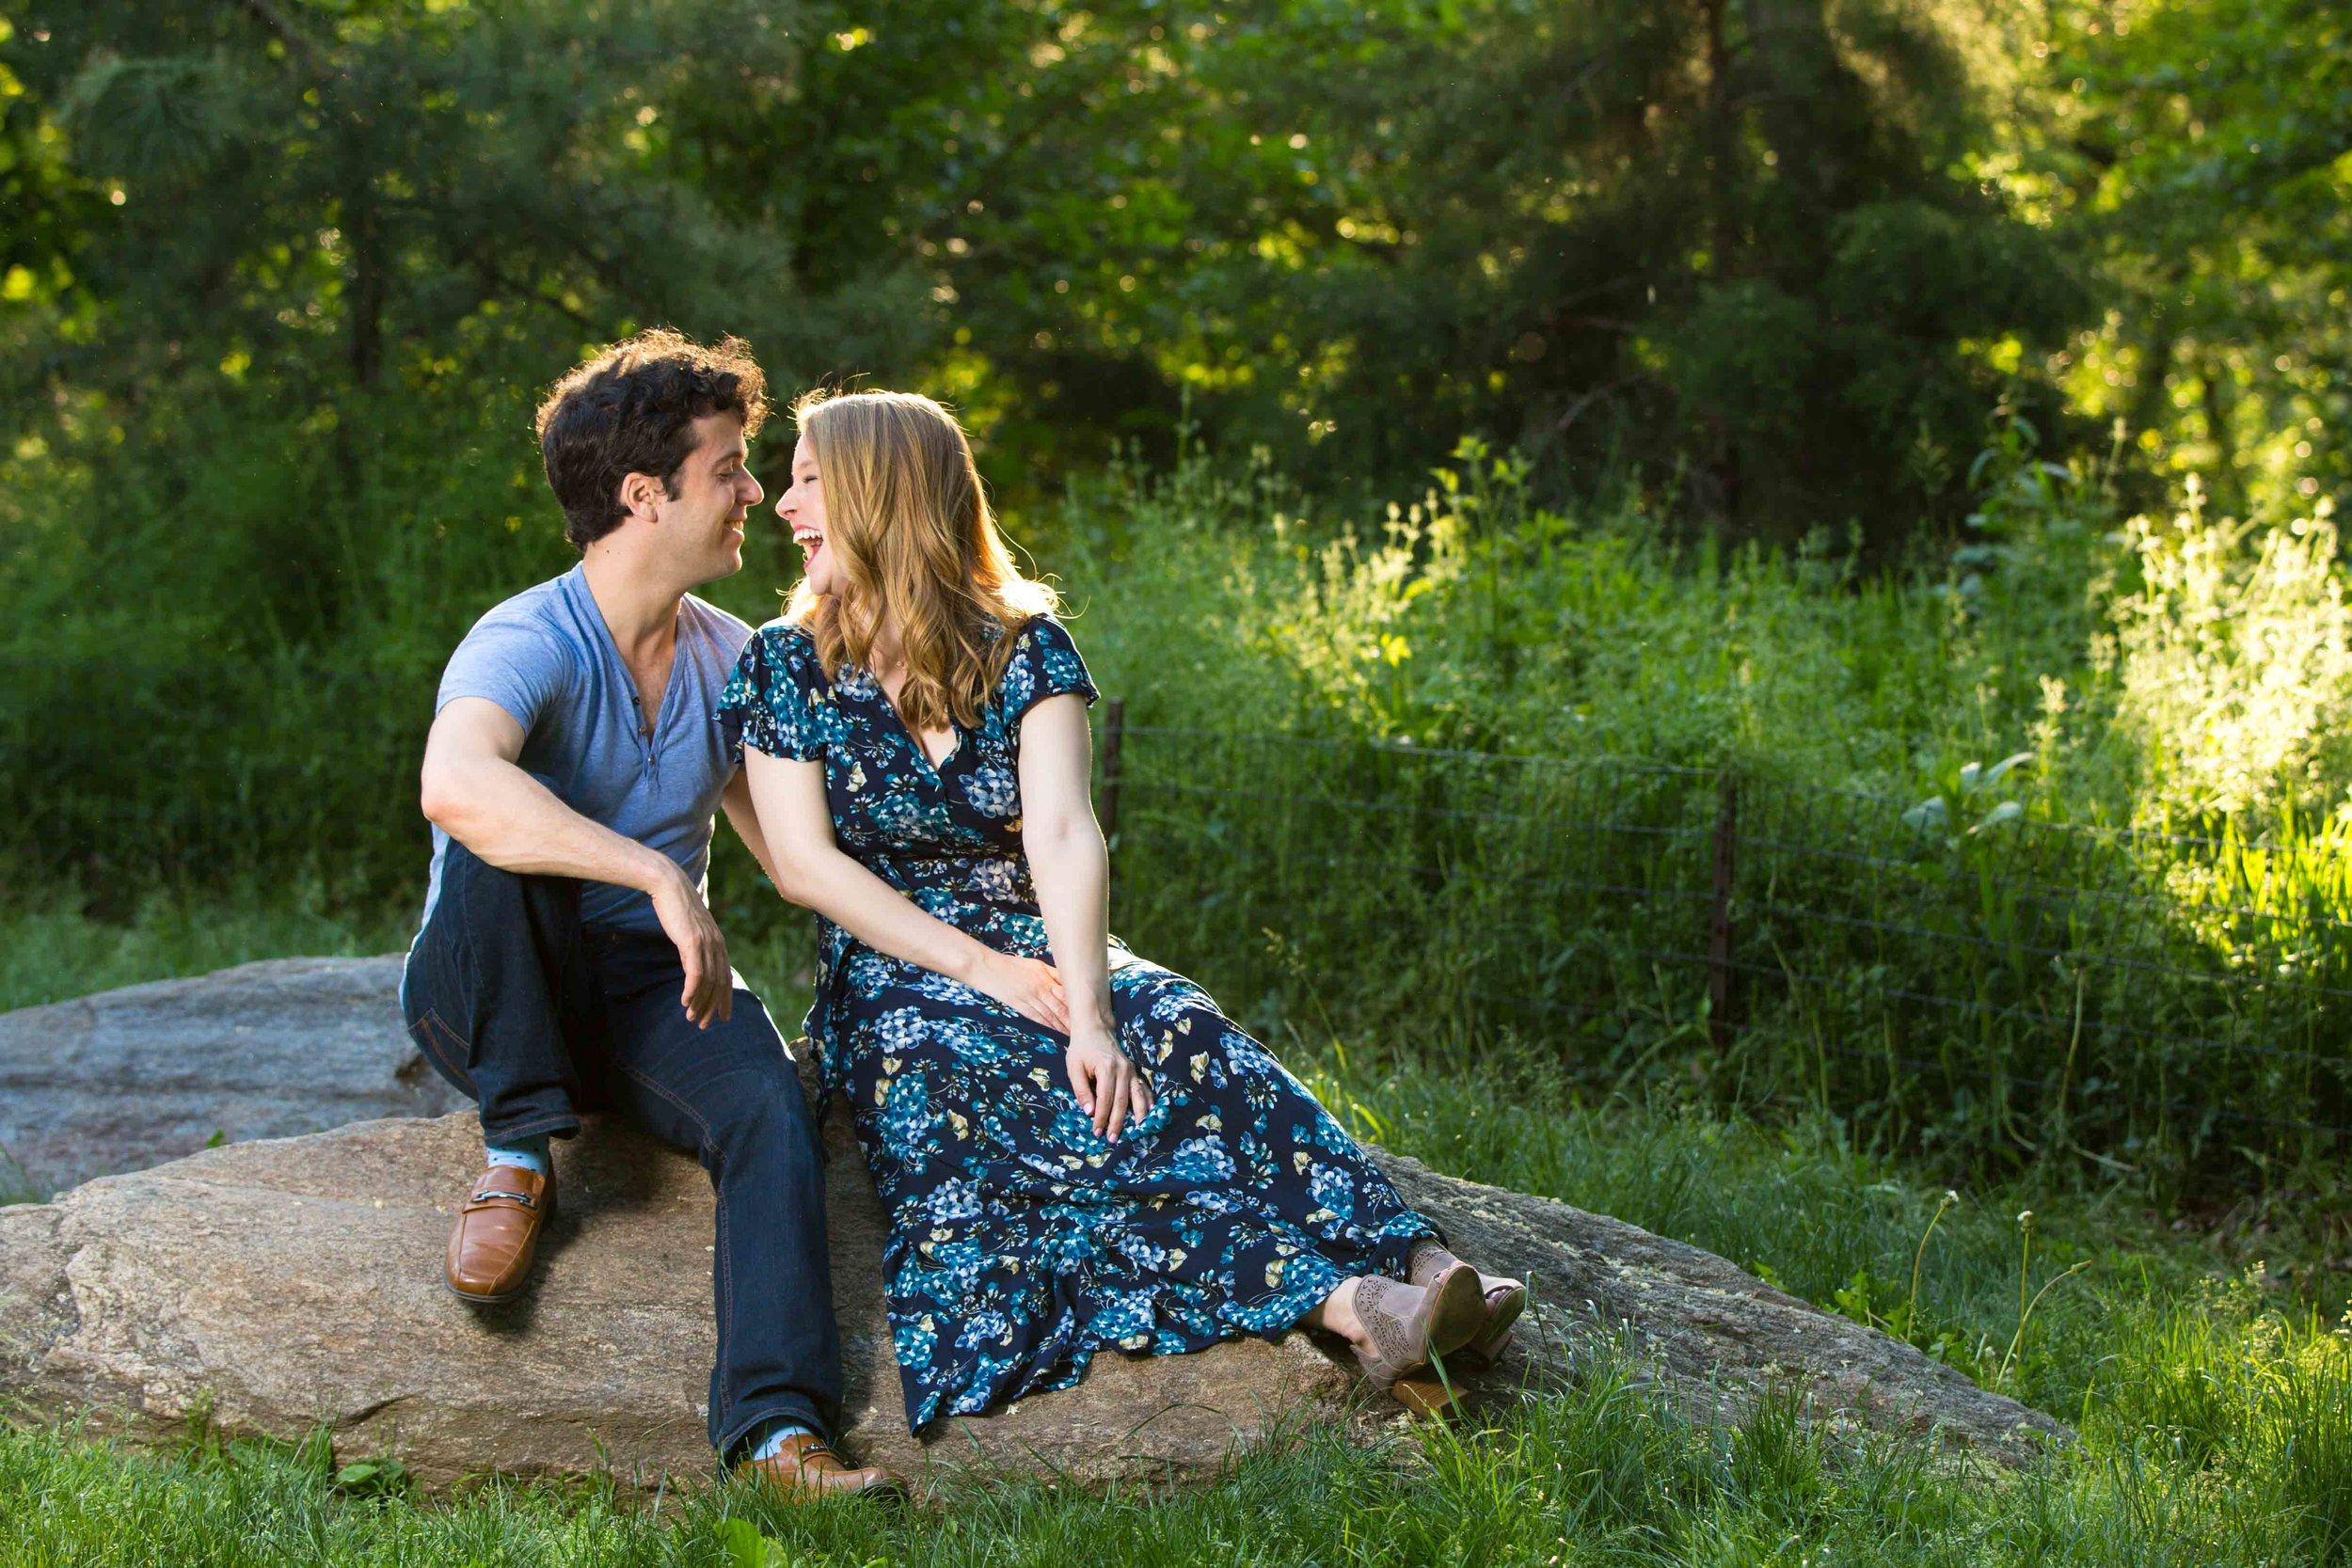 Central Park NYC Engagement Photo Session Shoot Wedding Photography Photographer